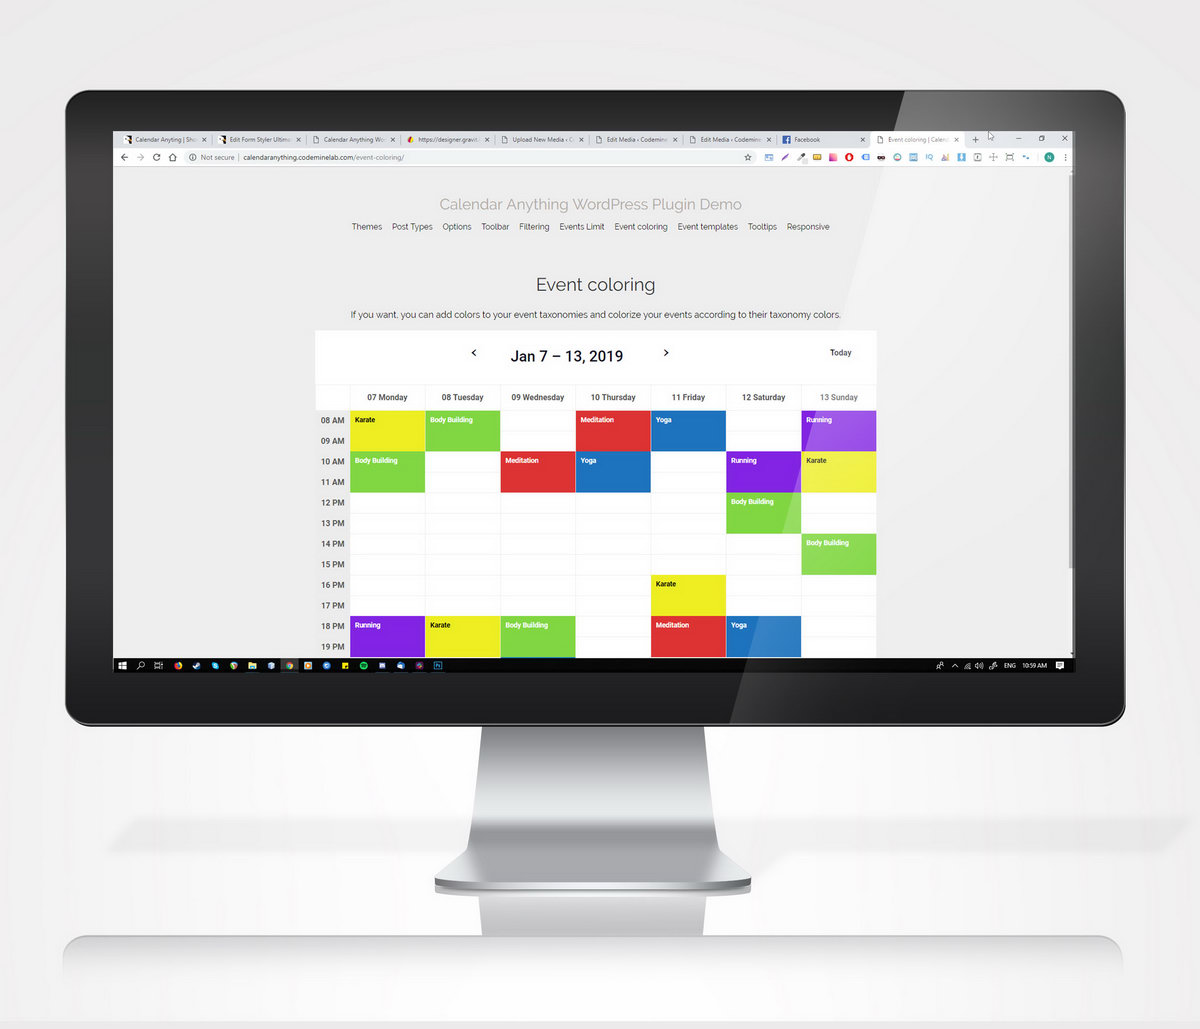 Calendar Anything | Show any existing WordPress custom post type in a calendar - 3